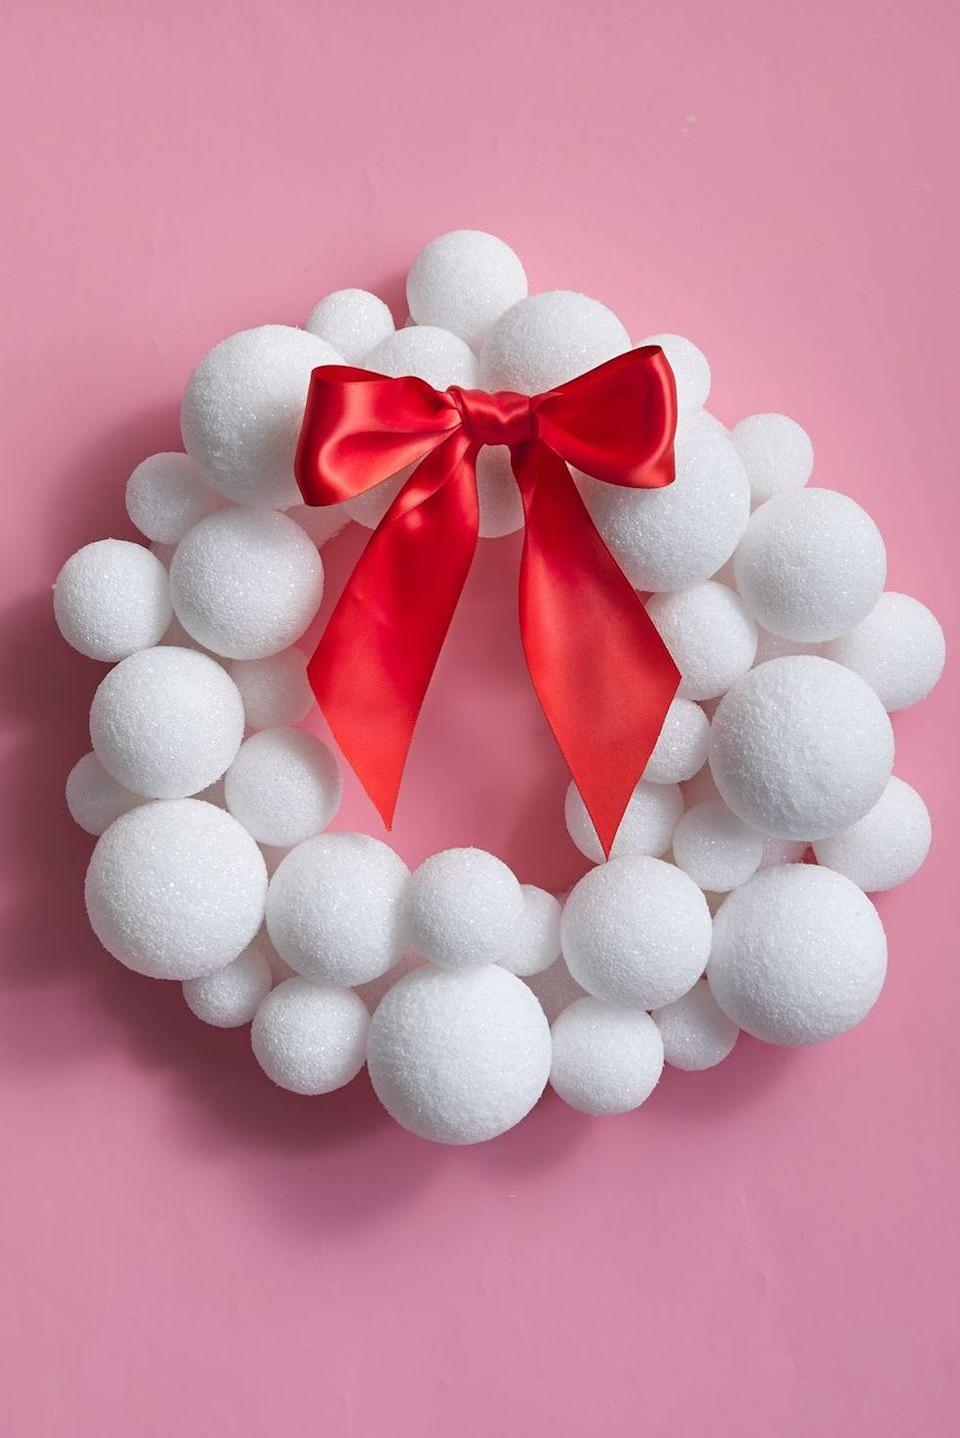 <p>Who would have thought that styrofoam balls could look so good? They're just what you need to make a crafty-looking wreath. All you have to do is apply the styrofoam balls to a wreath form with hot glue, allow them to dry, and top it off with a bow and wire for hanging.<br></p>